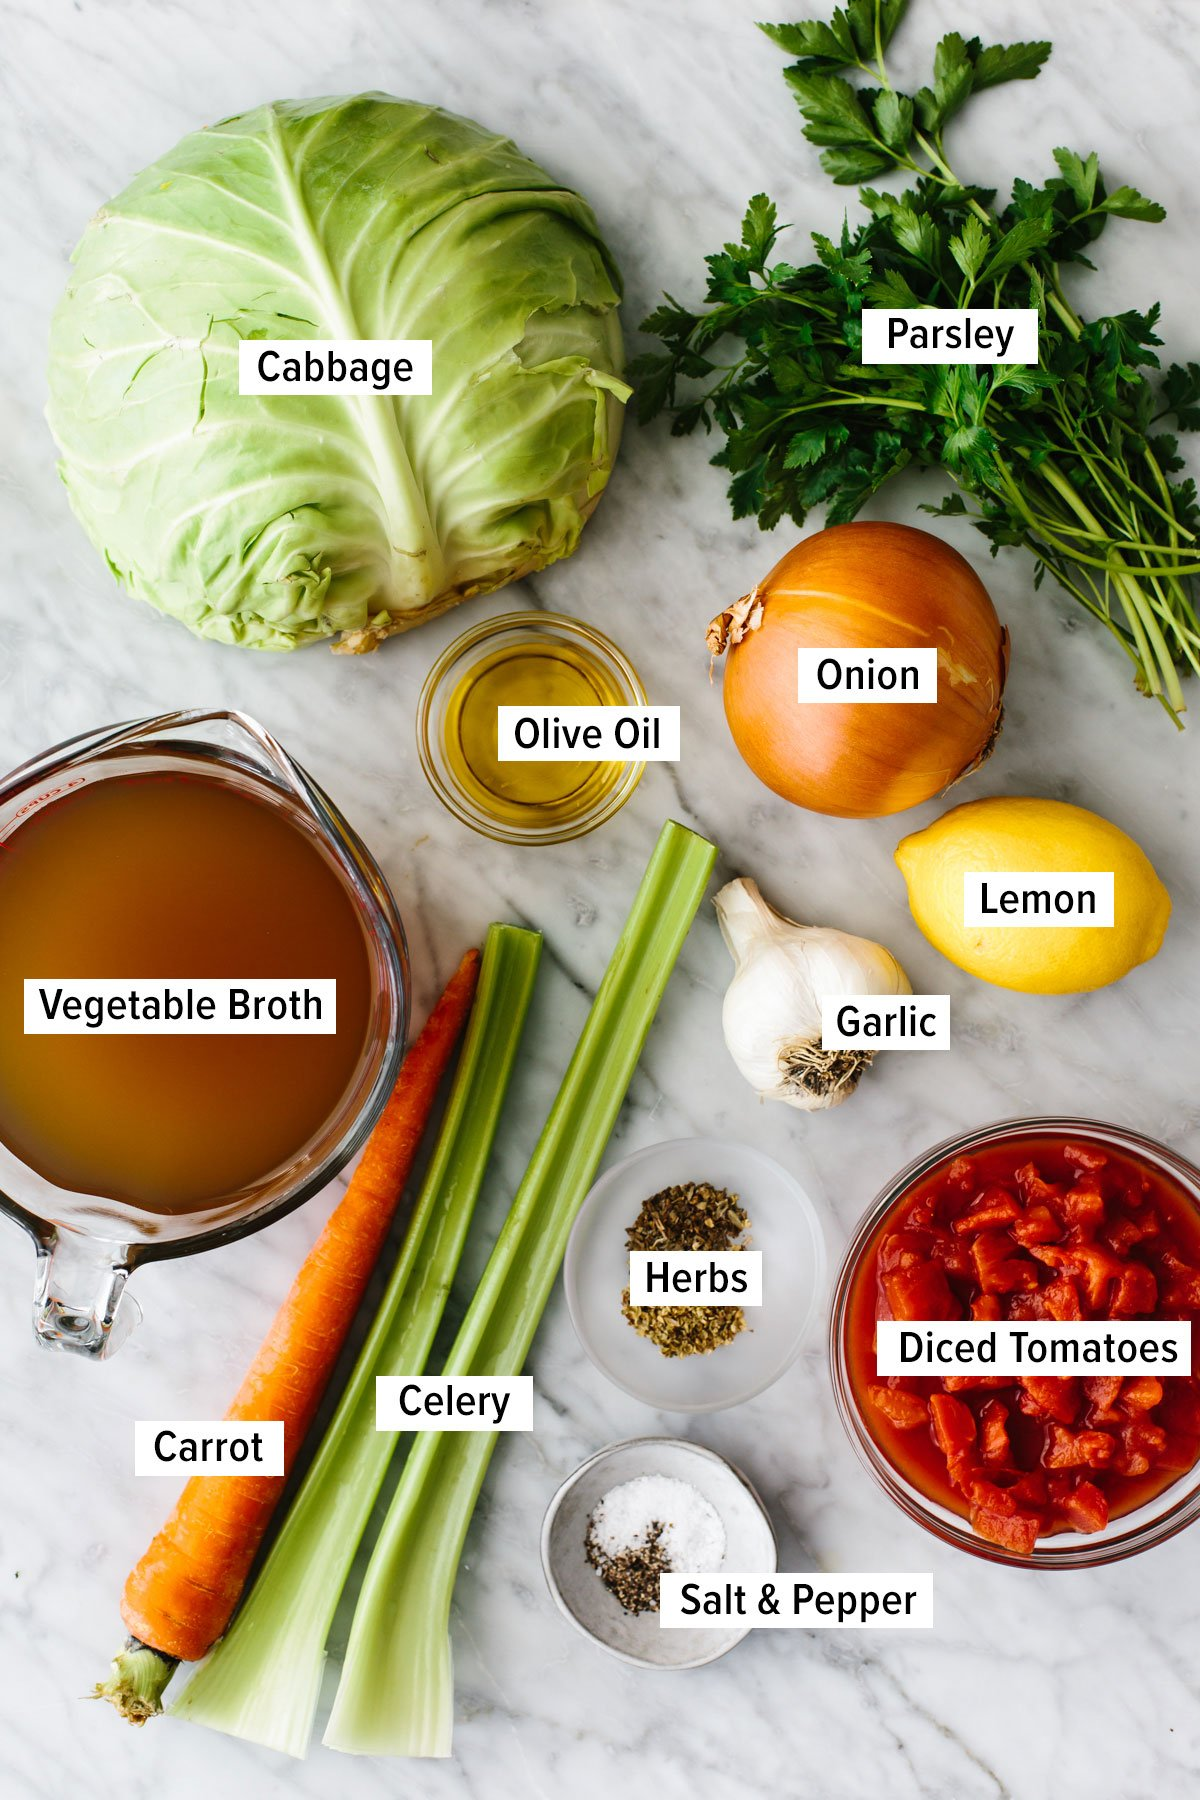 Ingredients for cabbage soup on a table.